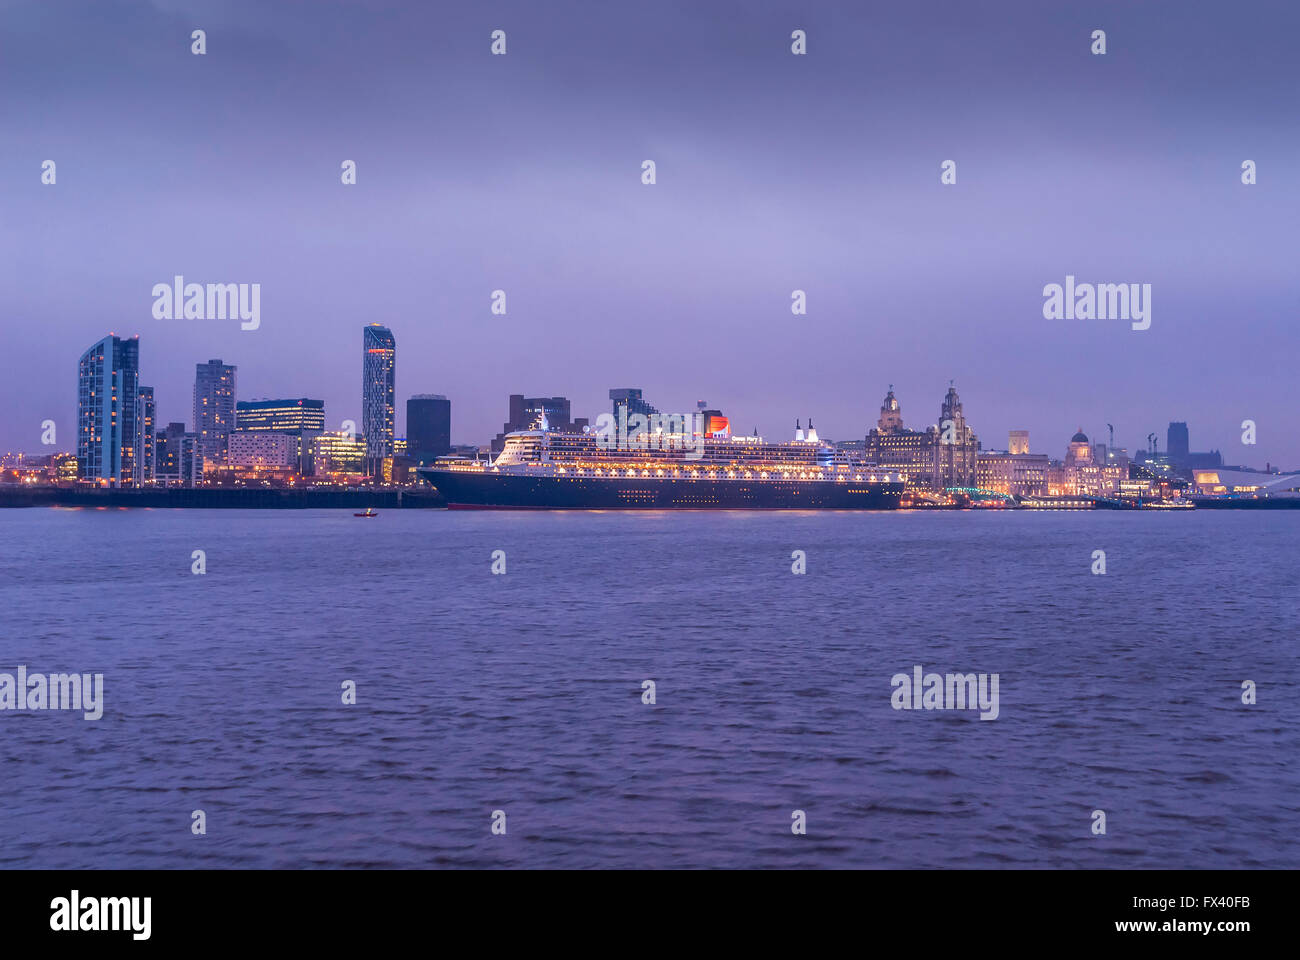 Liverpool waterfront twinkling at in the late evening light with the Cunard liner Queen Mary 2 berthed. - Stock Image